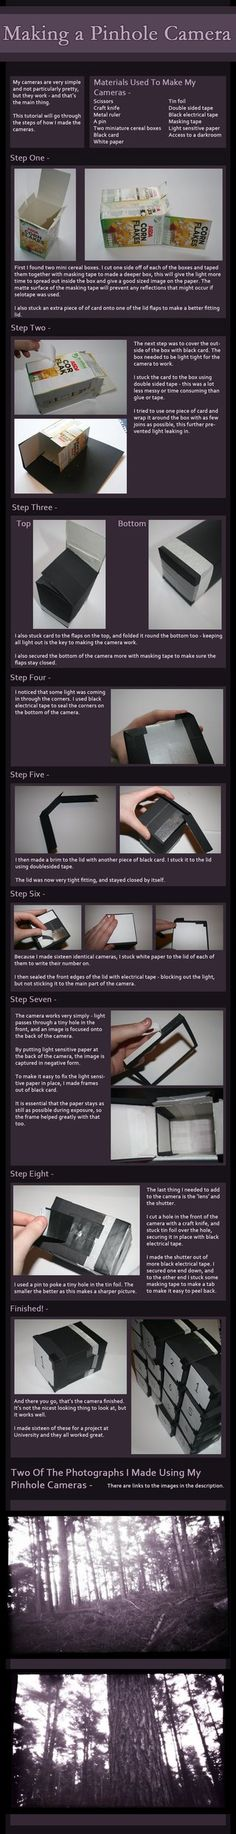 This tutorial shows how I made my Pinhole cameras for a project at University. They are very simple, but they work well. How to use the pinhole camera - In a darkroom, cut the light sensitive paper...